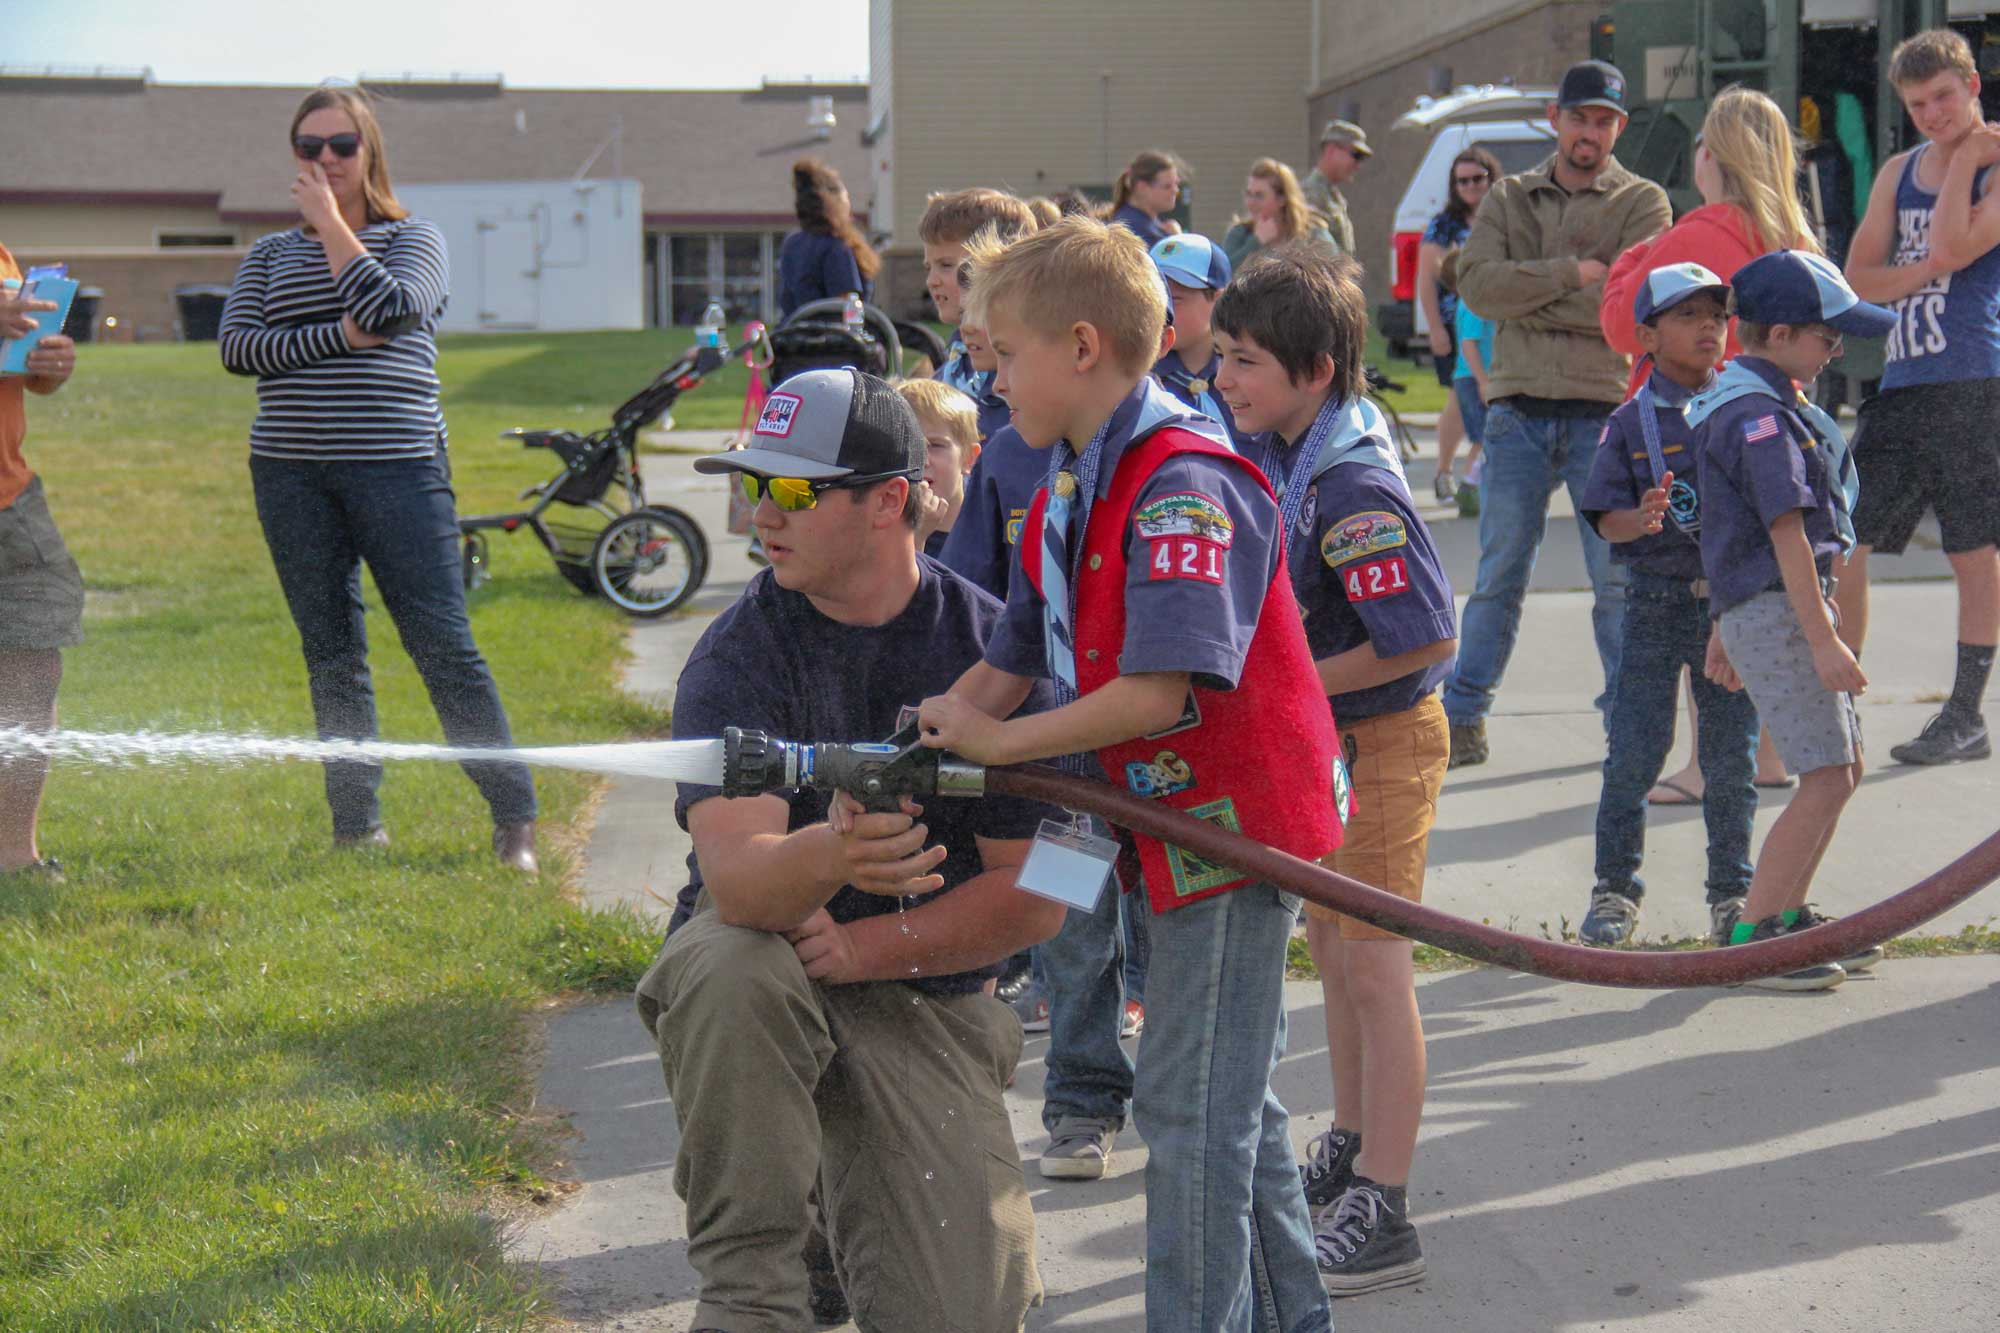 Laurel Volunteer Fire Department new hire Levi Jones helps a Laurel Cub Scout operatethe fire hose at the Middle School last week during Pack 421's fall meeting. A variety ofemergency personnel as well as the Billings Army Reserve and DNRC were on hand to show the scouts a little of what they do.